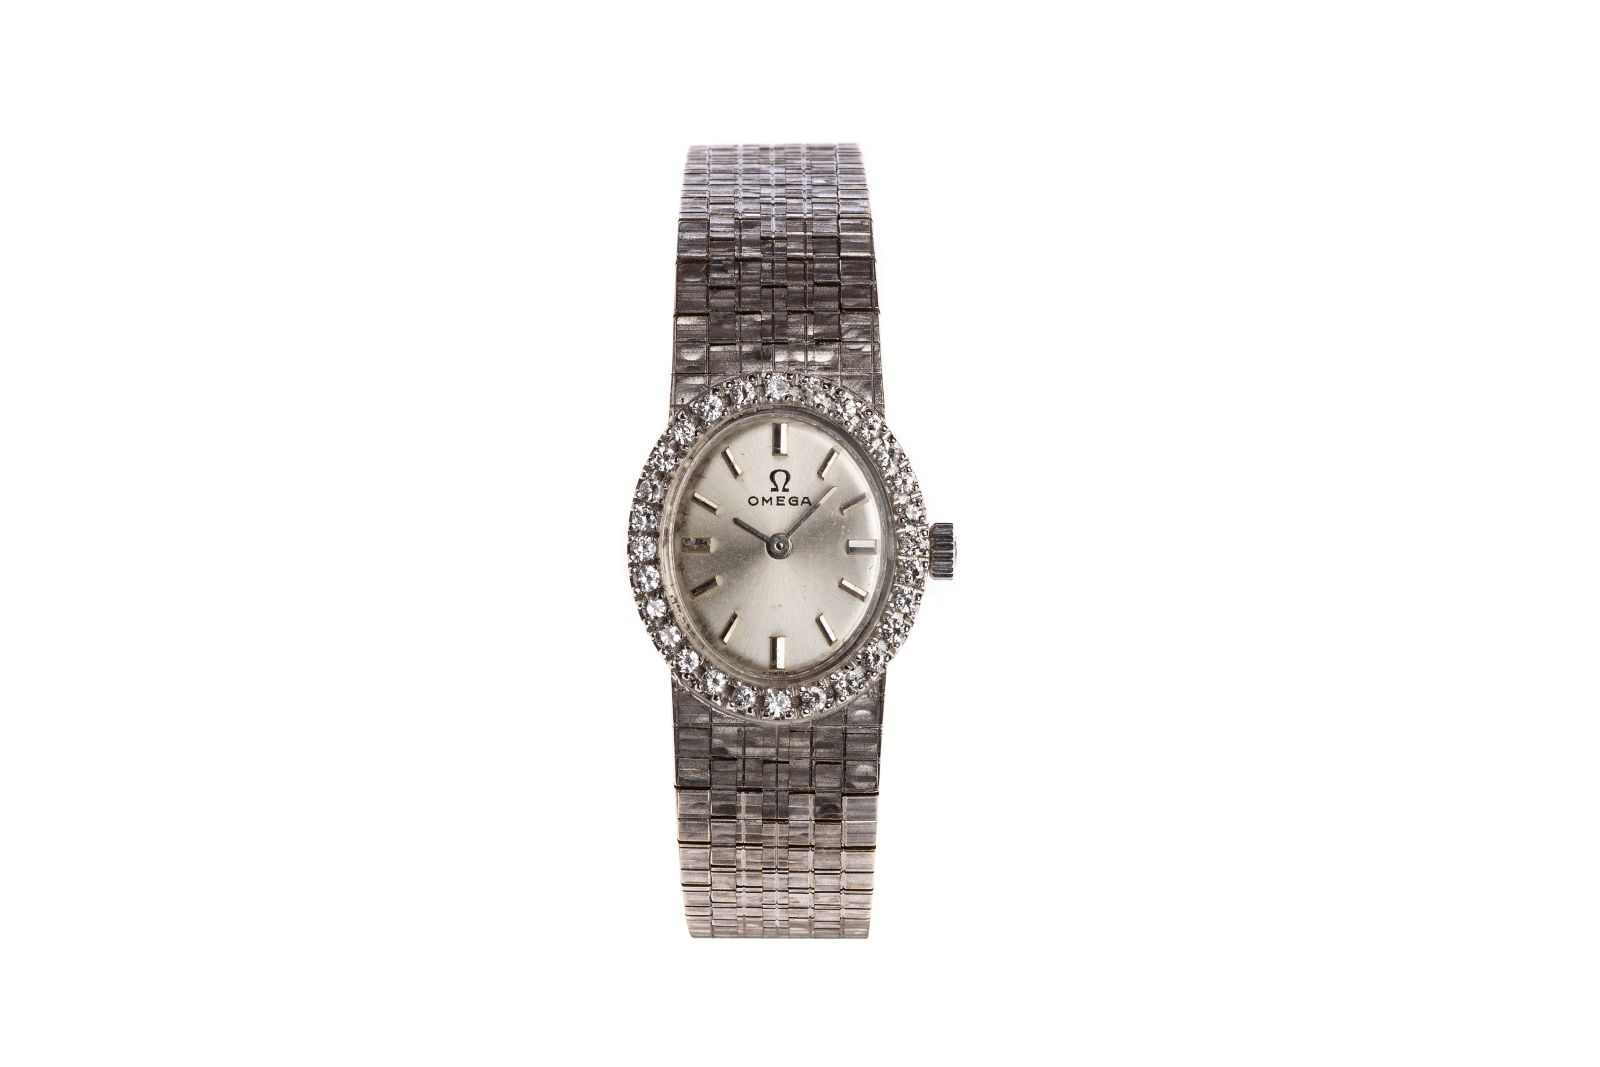 #22 Omega Ladies Brillant watch | Omega Damen Brillantuhr Image